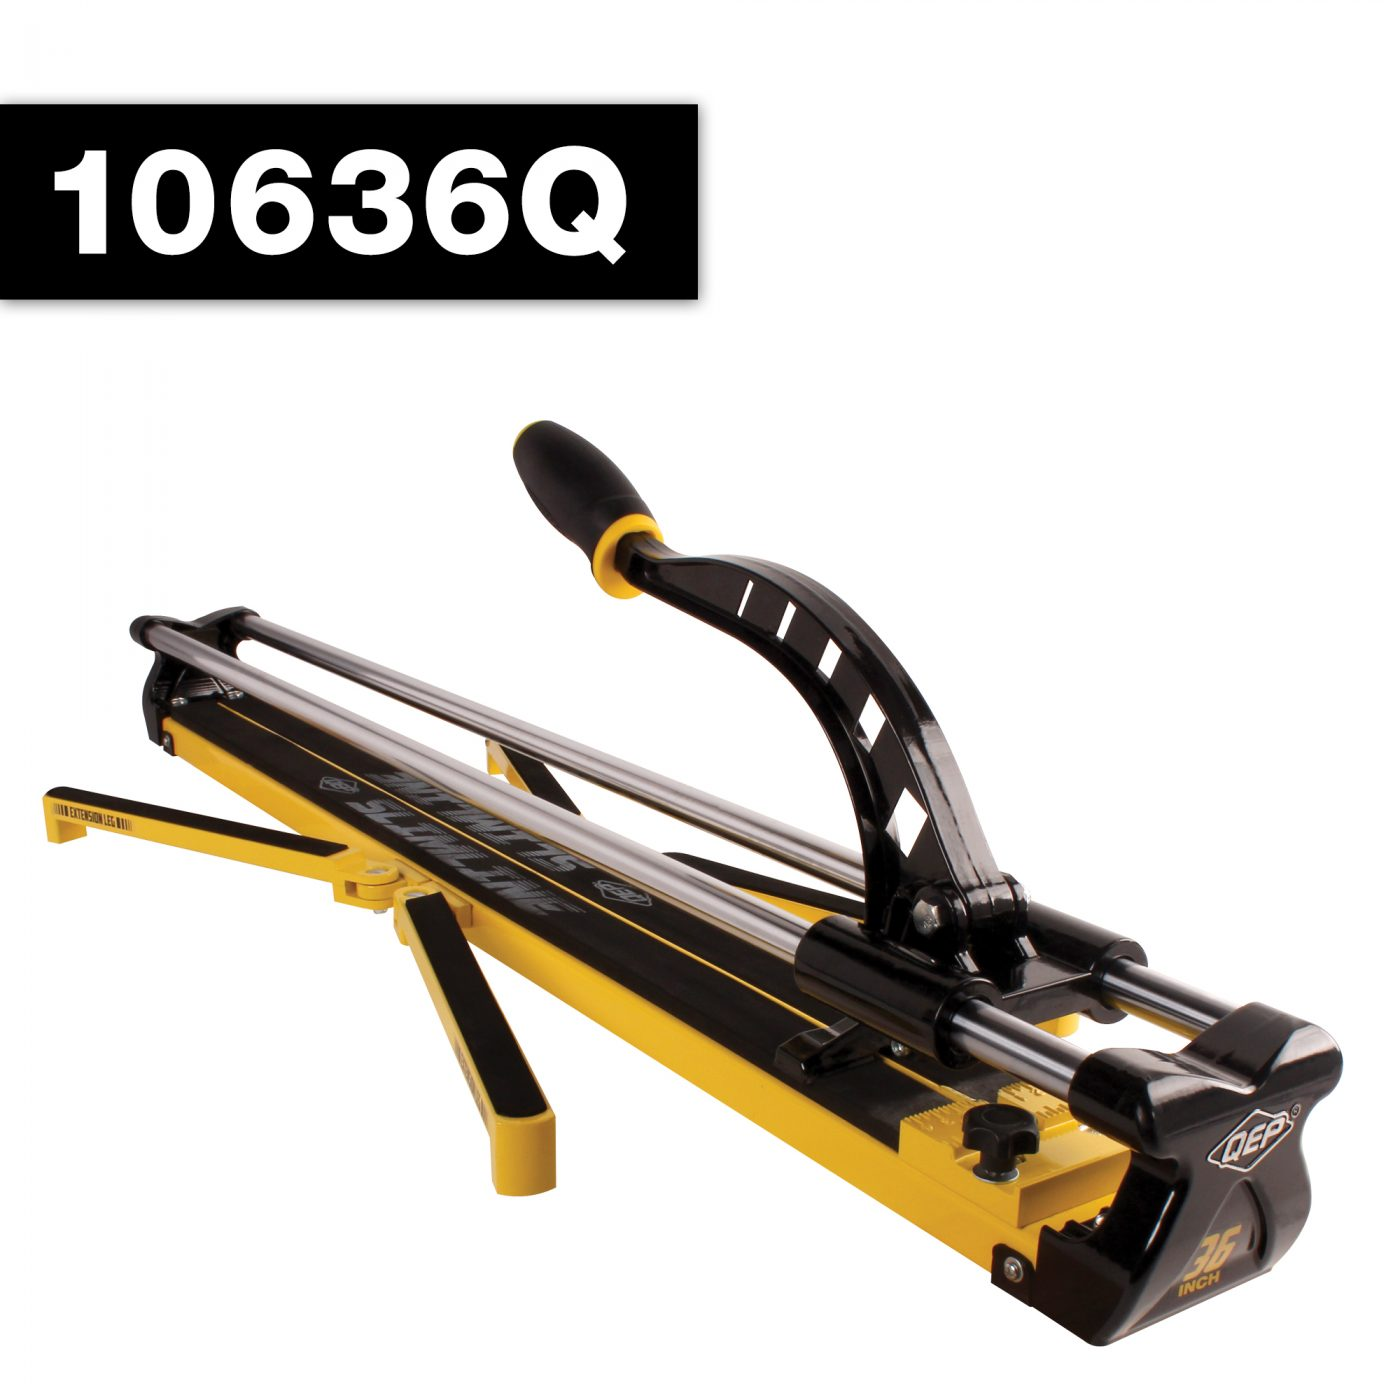 X-TREME Series Slimline Cutter